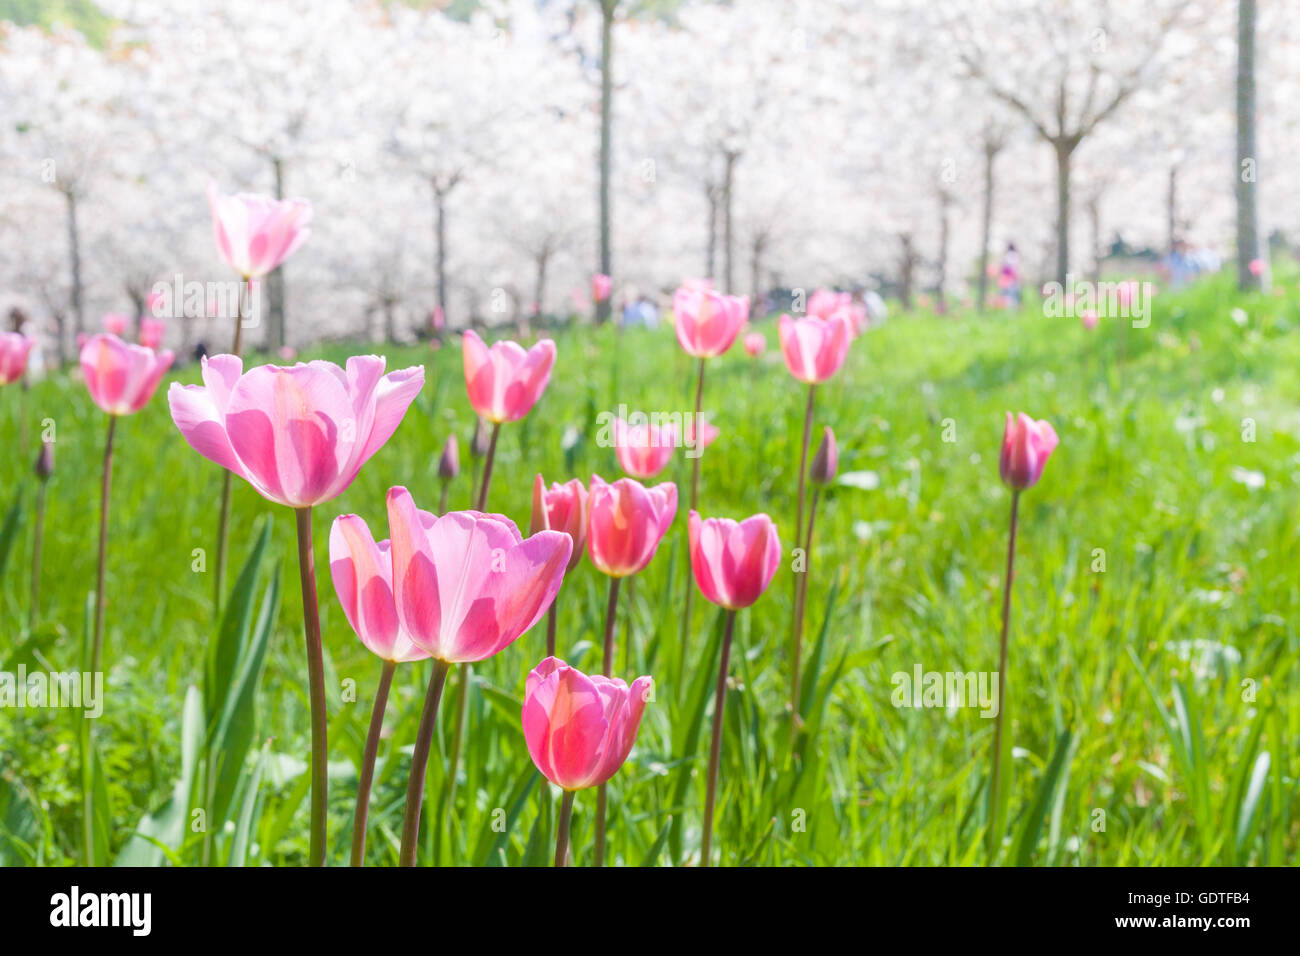 Bright pink tulips under white cherry blossom trees in an orchard at Alnwick Garden, Northumberland in the late - Stock Image